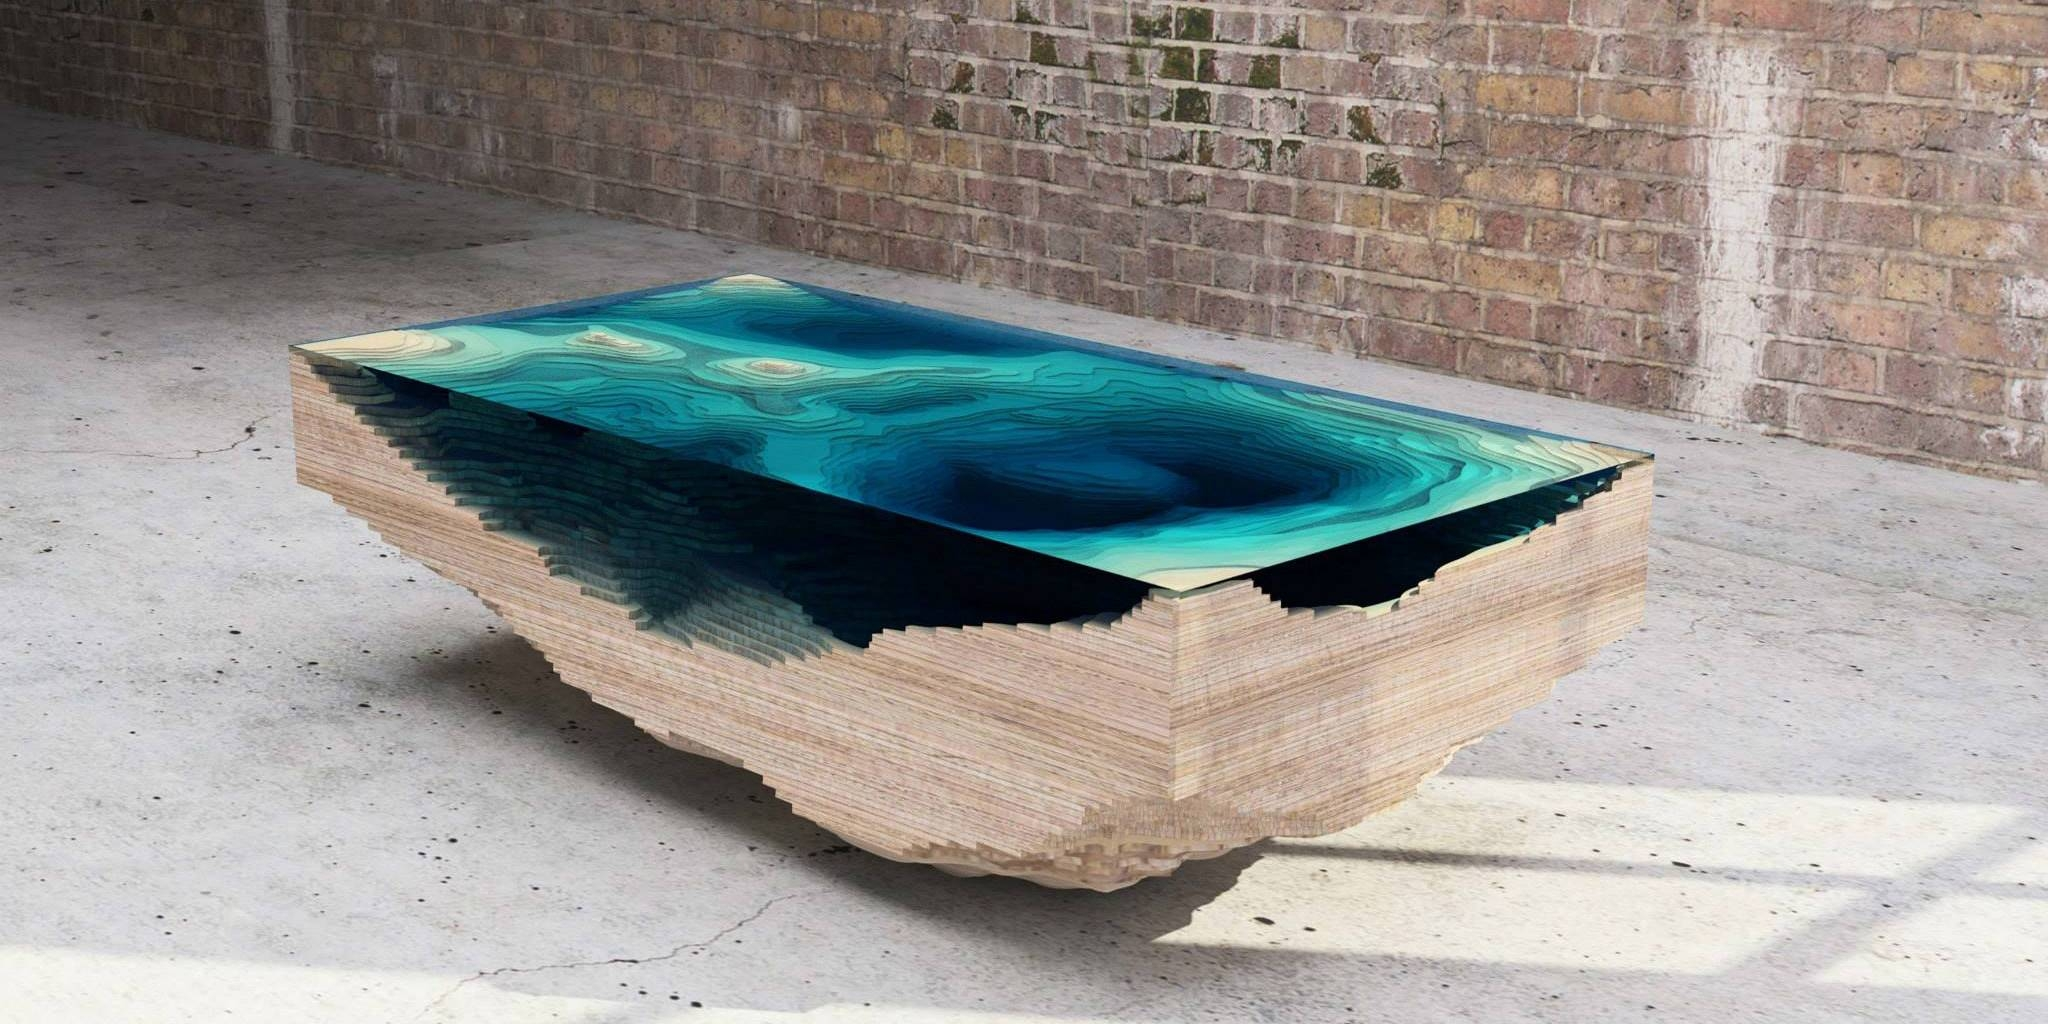 Coffee Table Made Of Layered Glass To Resemble The Depths Of The Ocean regarding Swirl Glass Coffee Tables (Image 6 of 30)